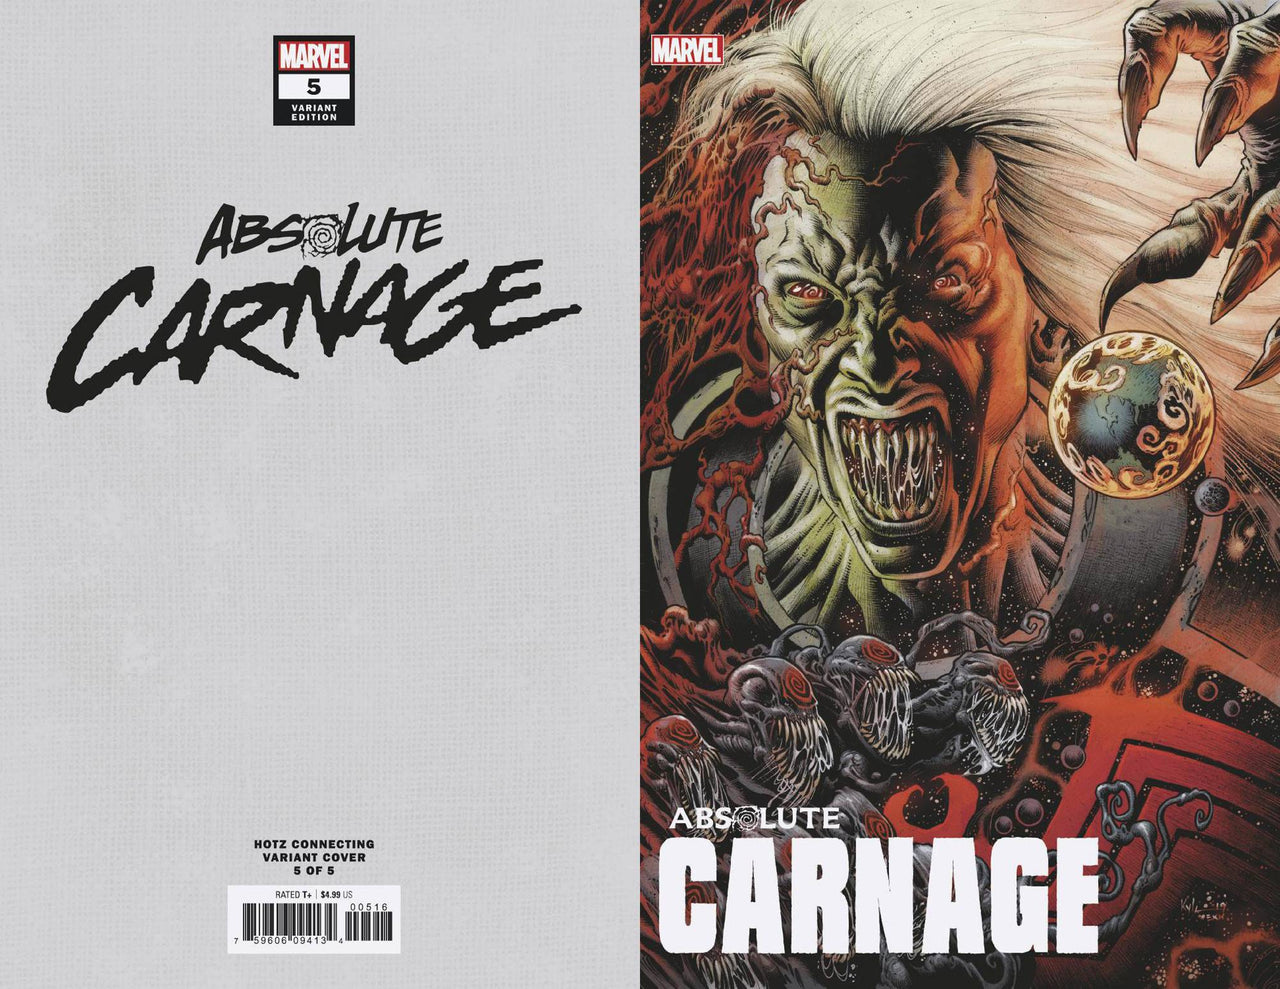 Absolute Carnage Connecting Variant issue #5 CGC 9.8